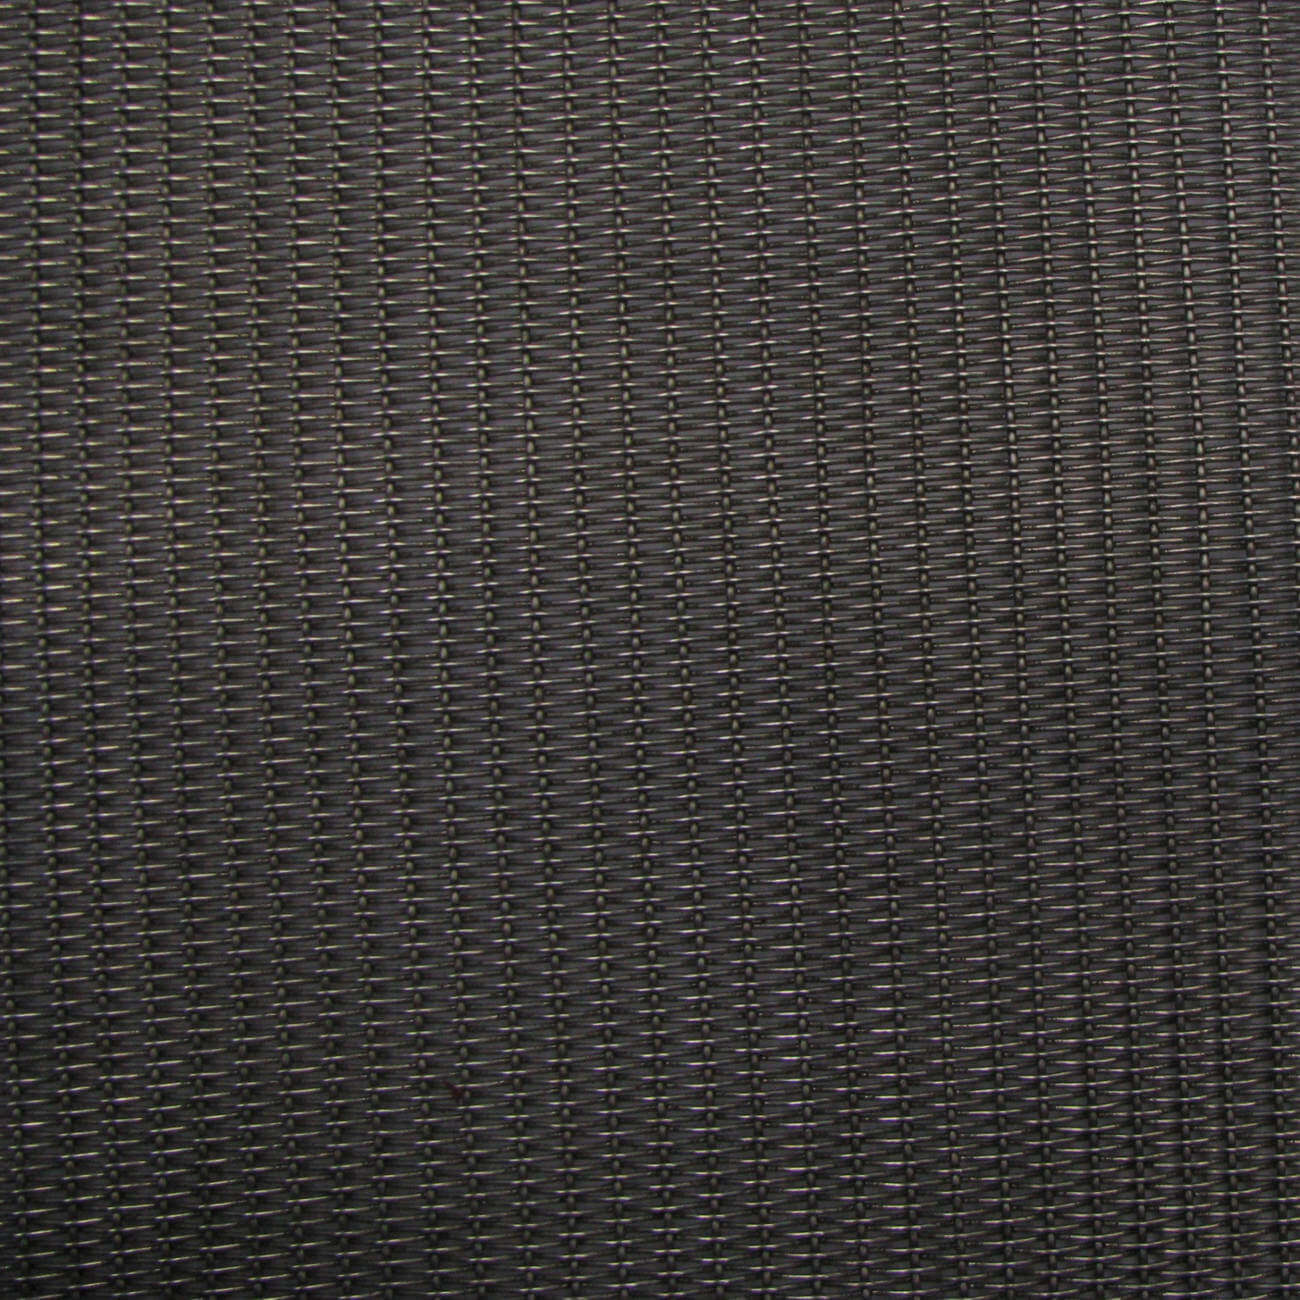 MH0404 Fine Woven Wire Mesh Per Metre: Openings